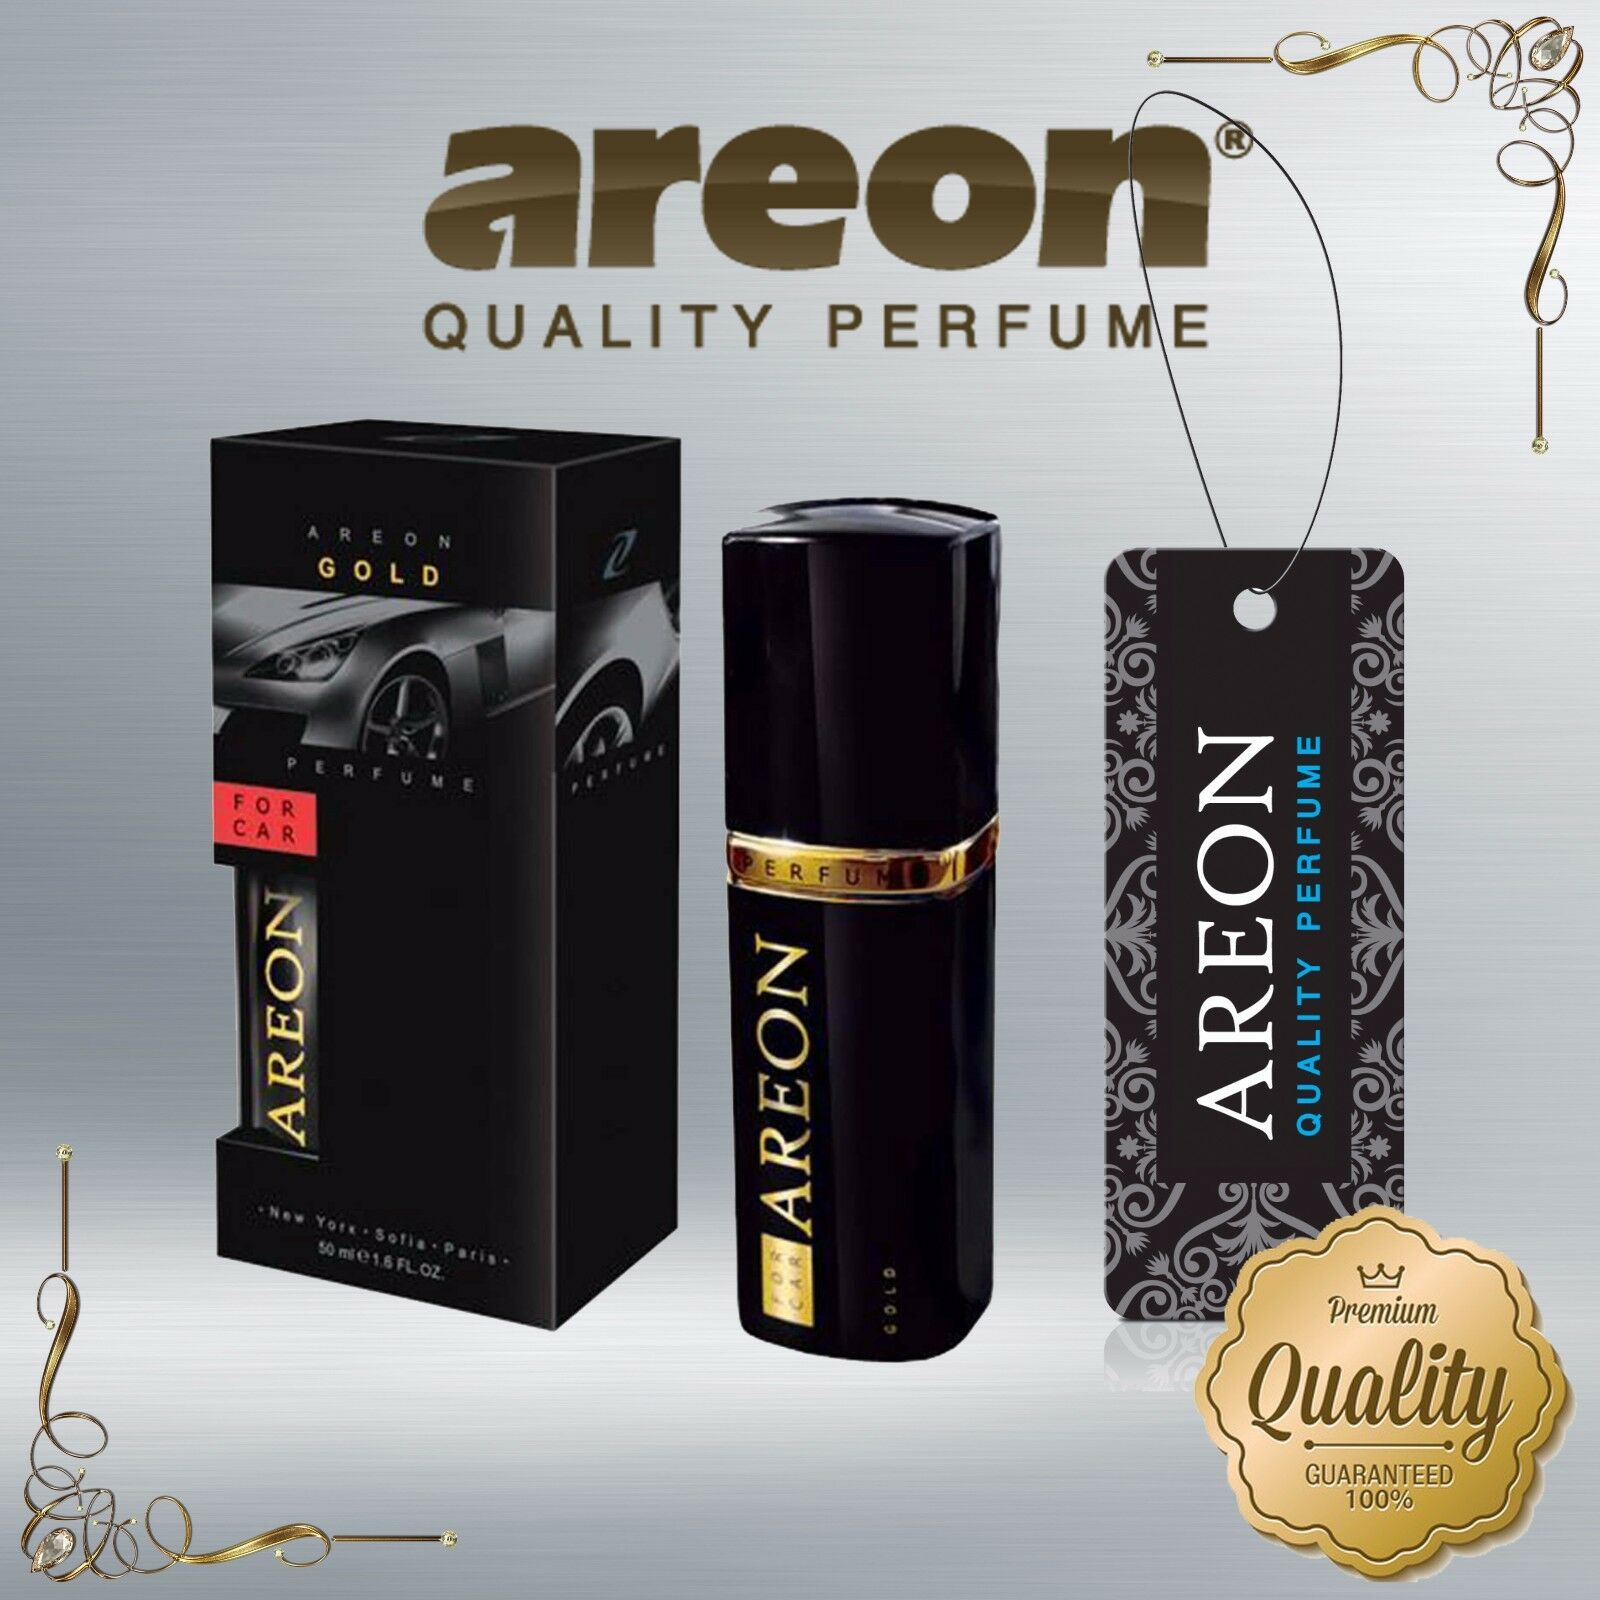 Promotion Air Freshener Home Office Car Luxury AREON Perfume Gold